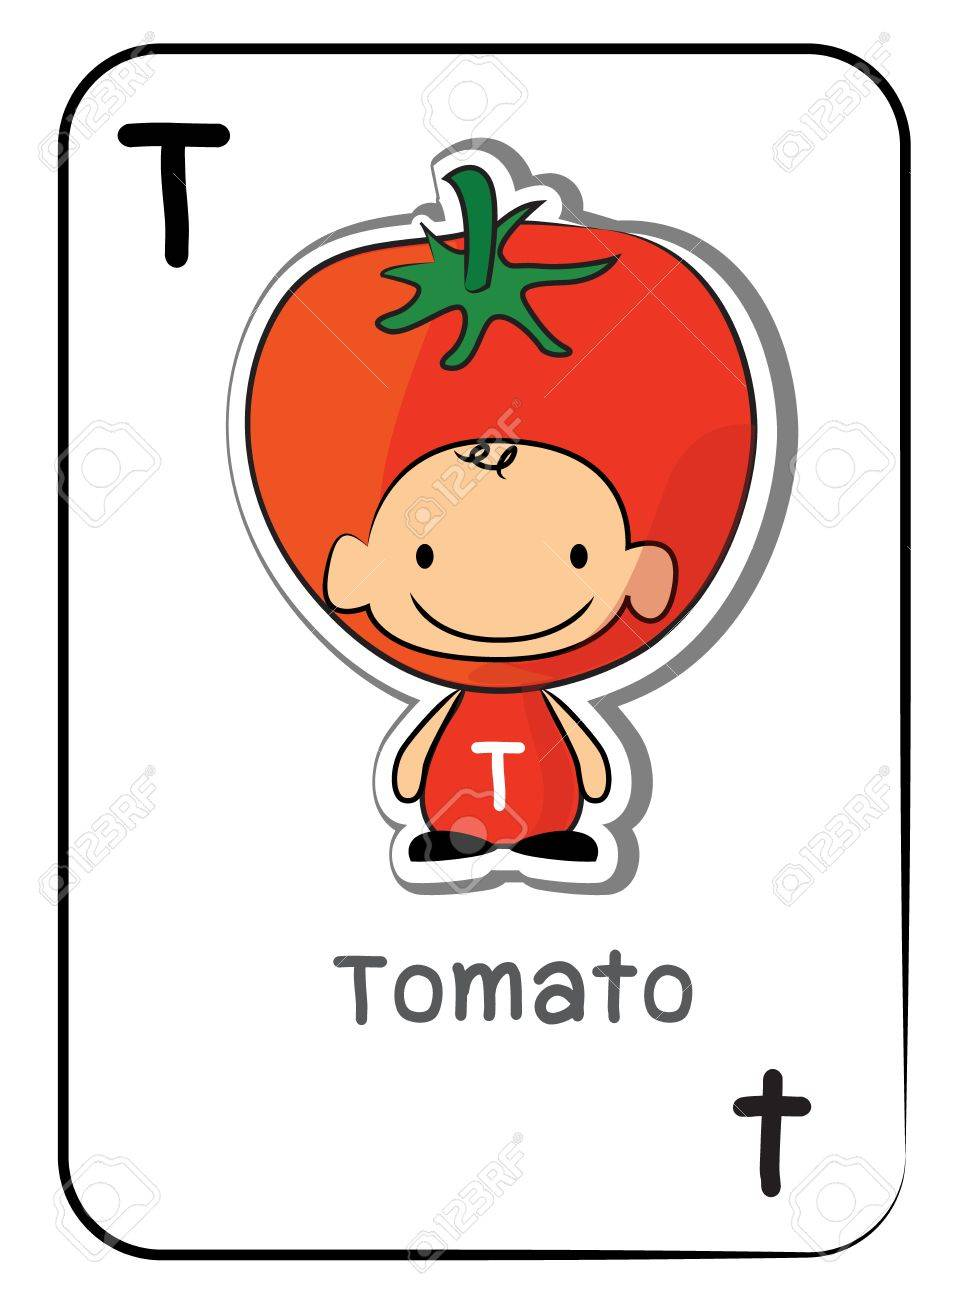 T For Tomato Of Fruit Flashcard Vector Illustration On White Background Stock